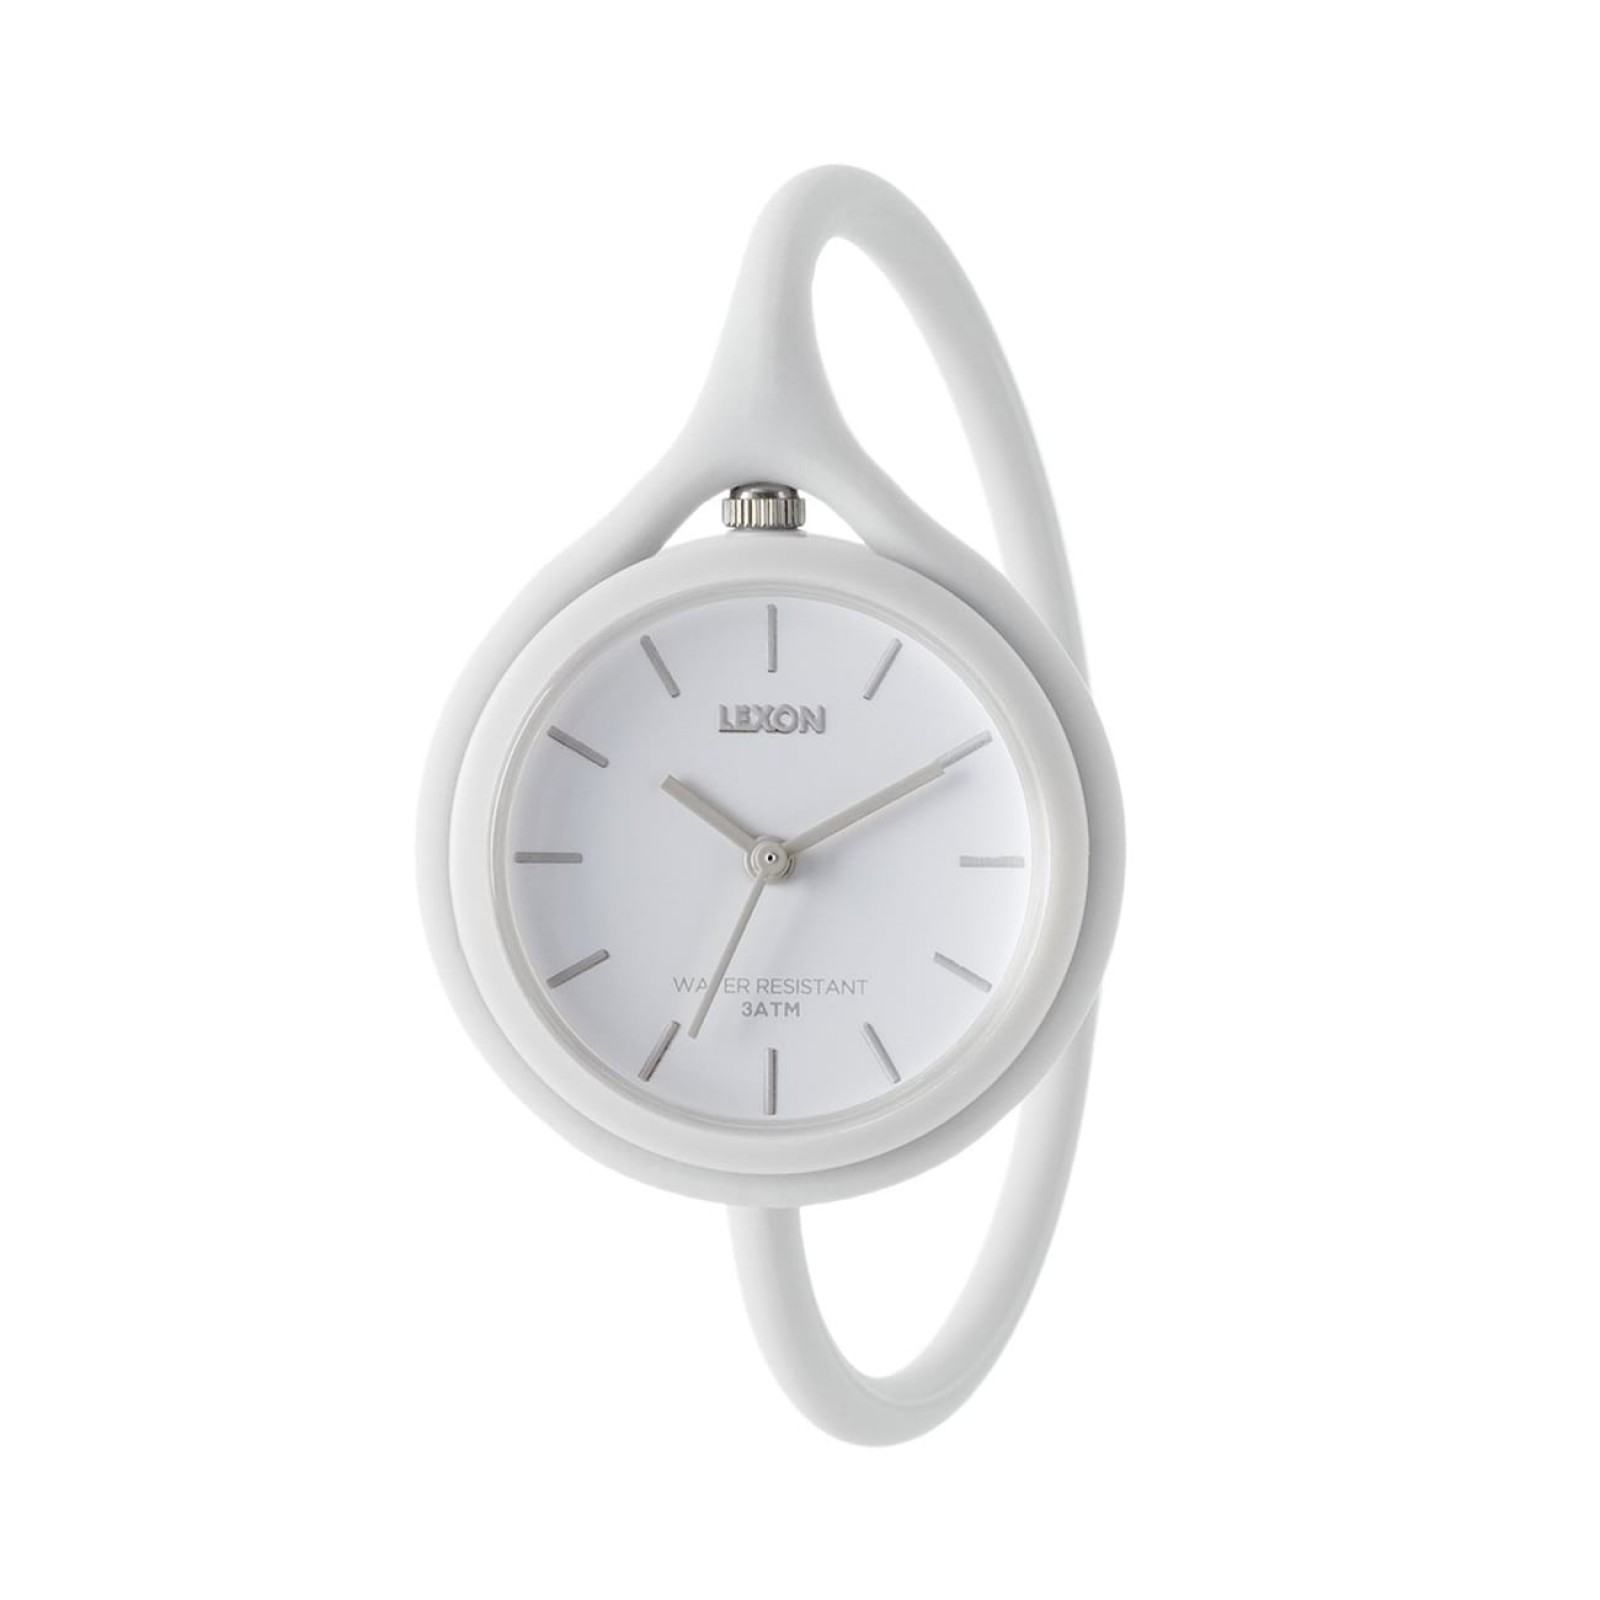 Take Time 3 in 1 Wrist Watch (White) - LEXON